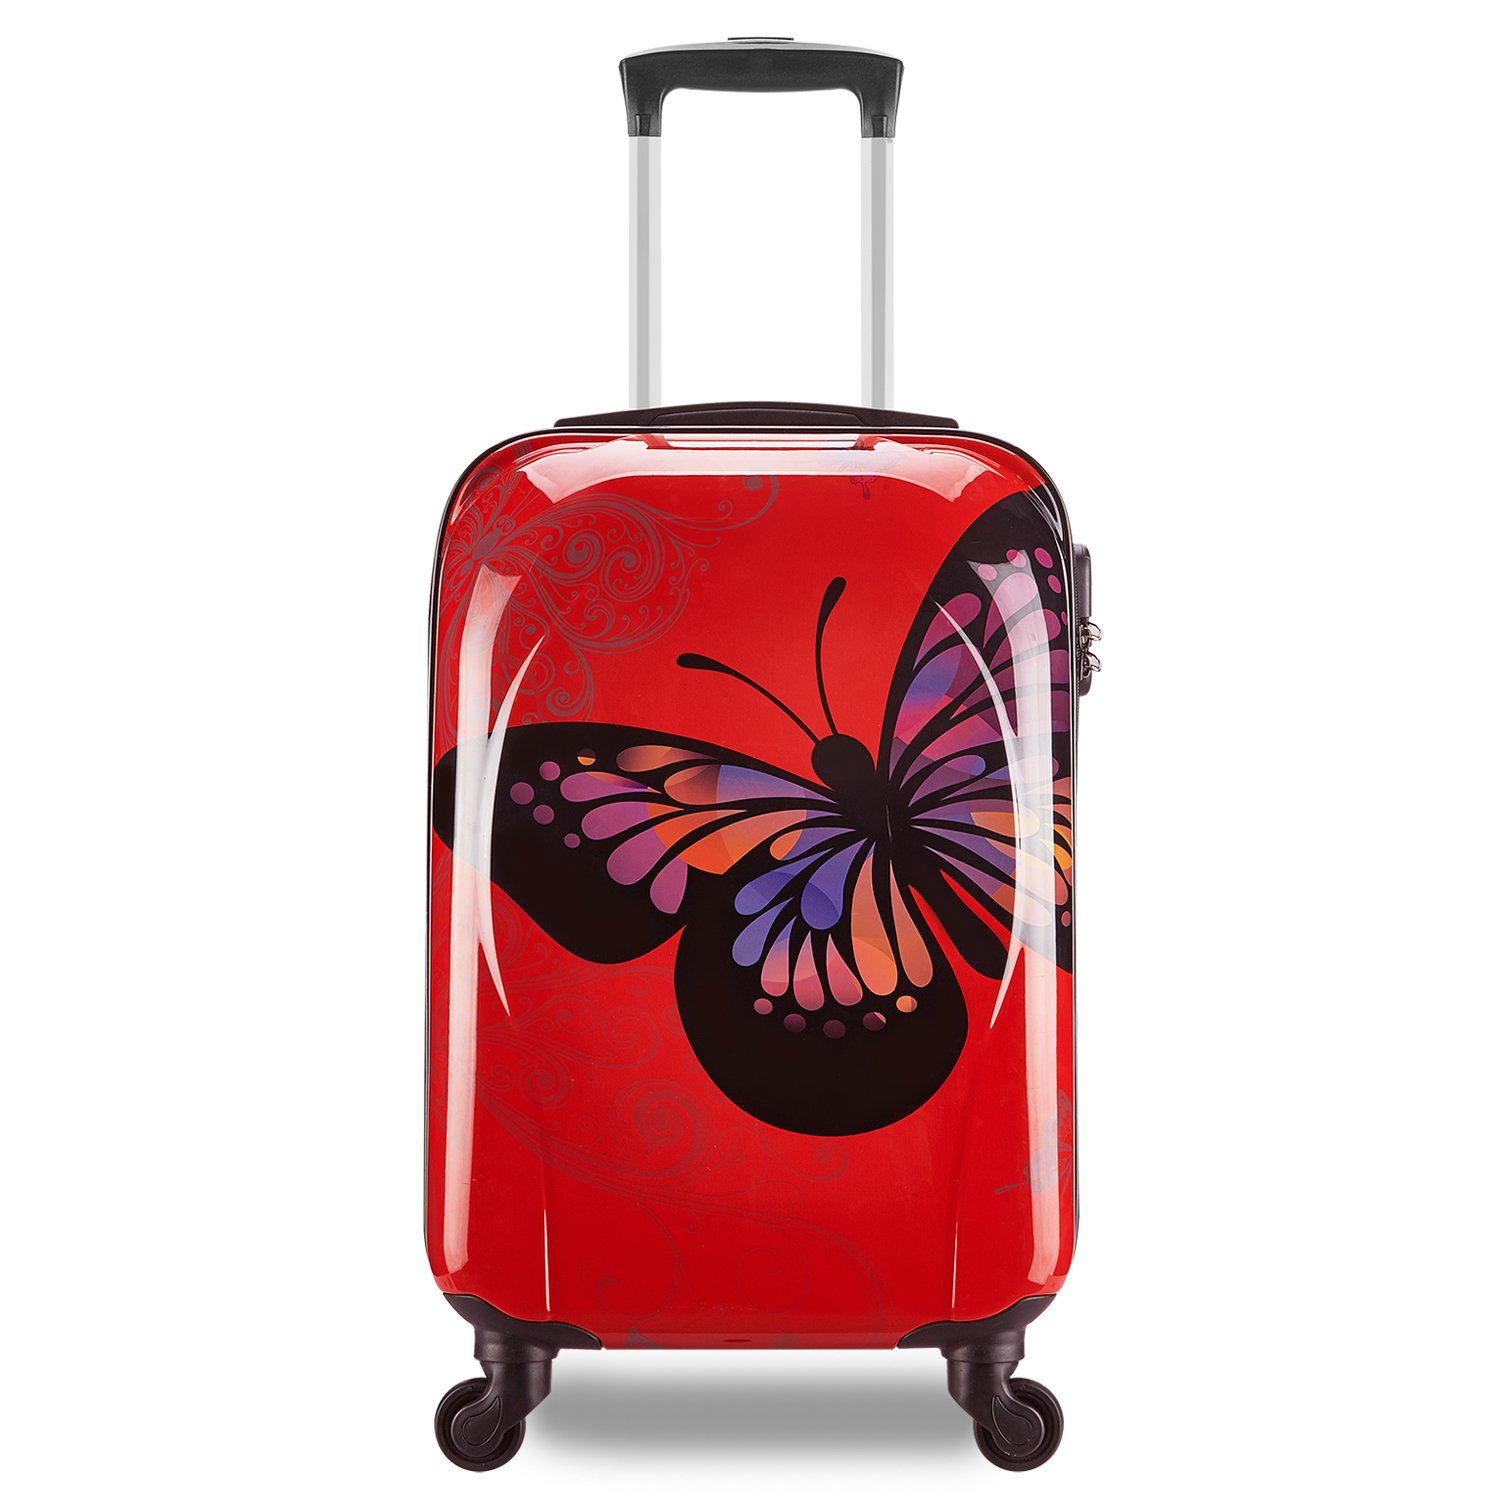 Small Light Hard Case Cabin Carry On Travel Suitcase Bag Max For Virgin Atlantic